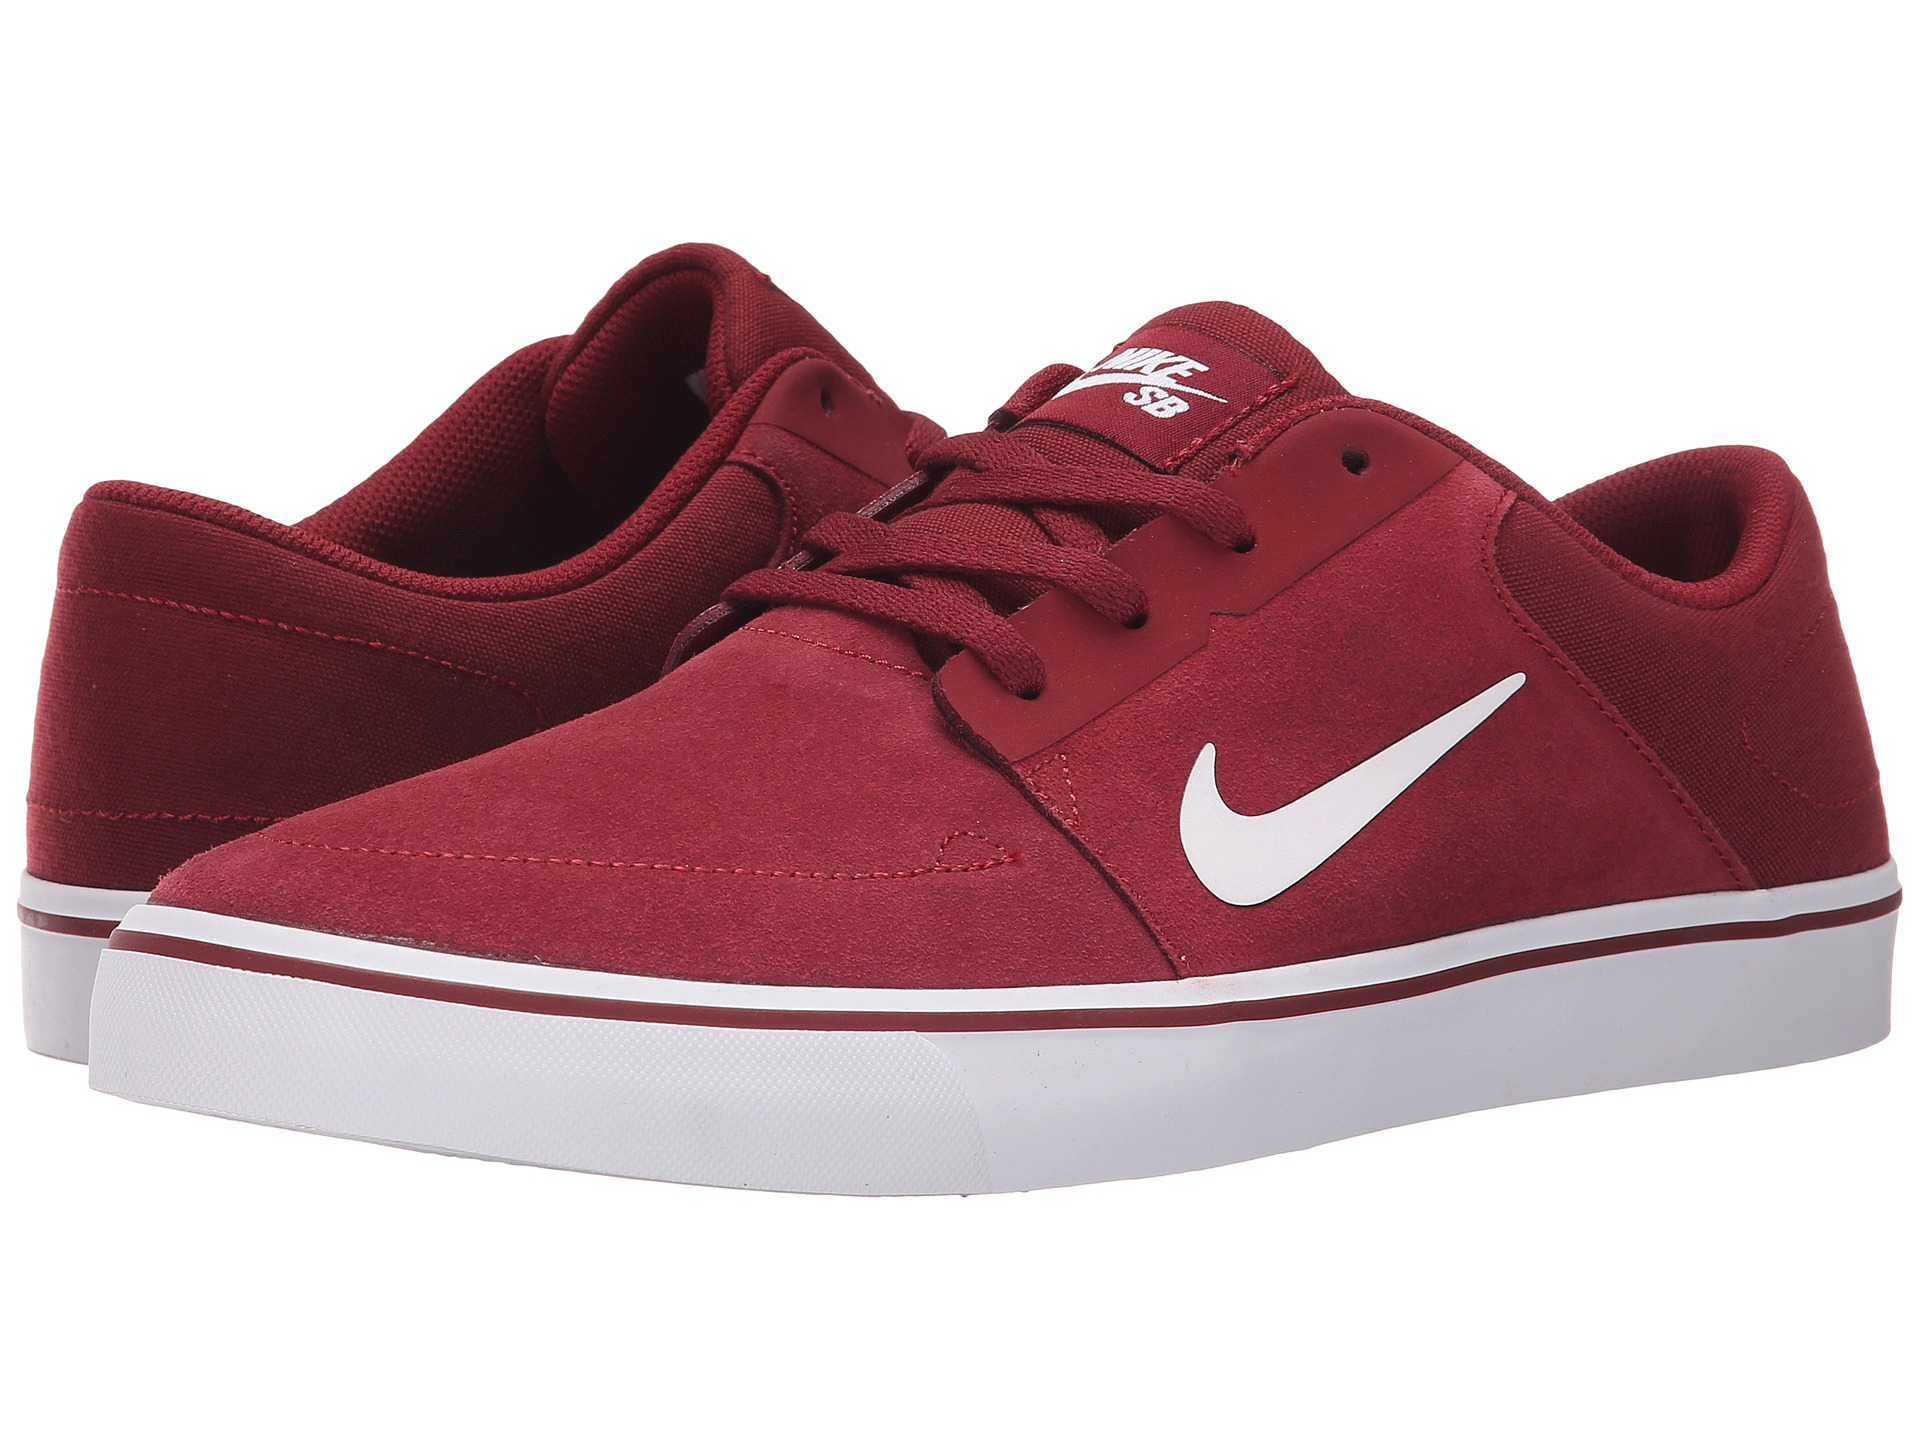 Lyst - Nike Portmore in Red for Men